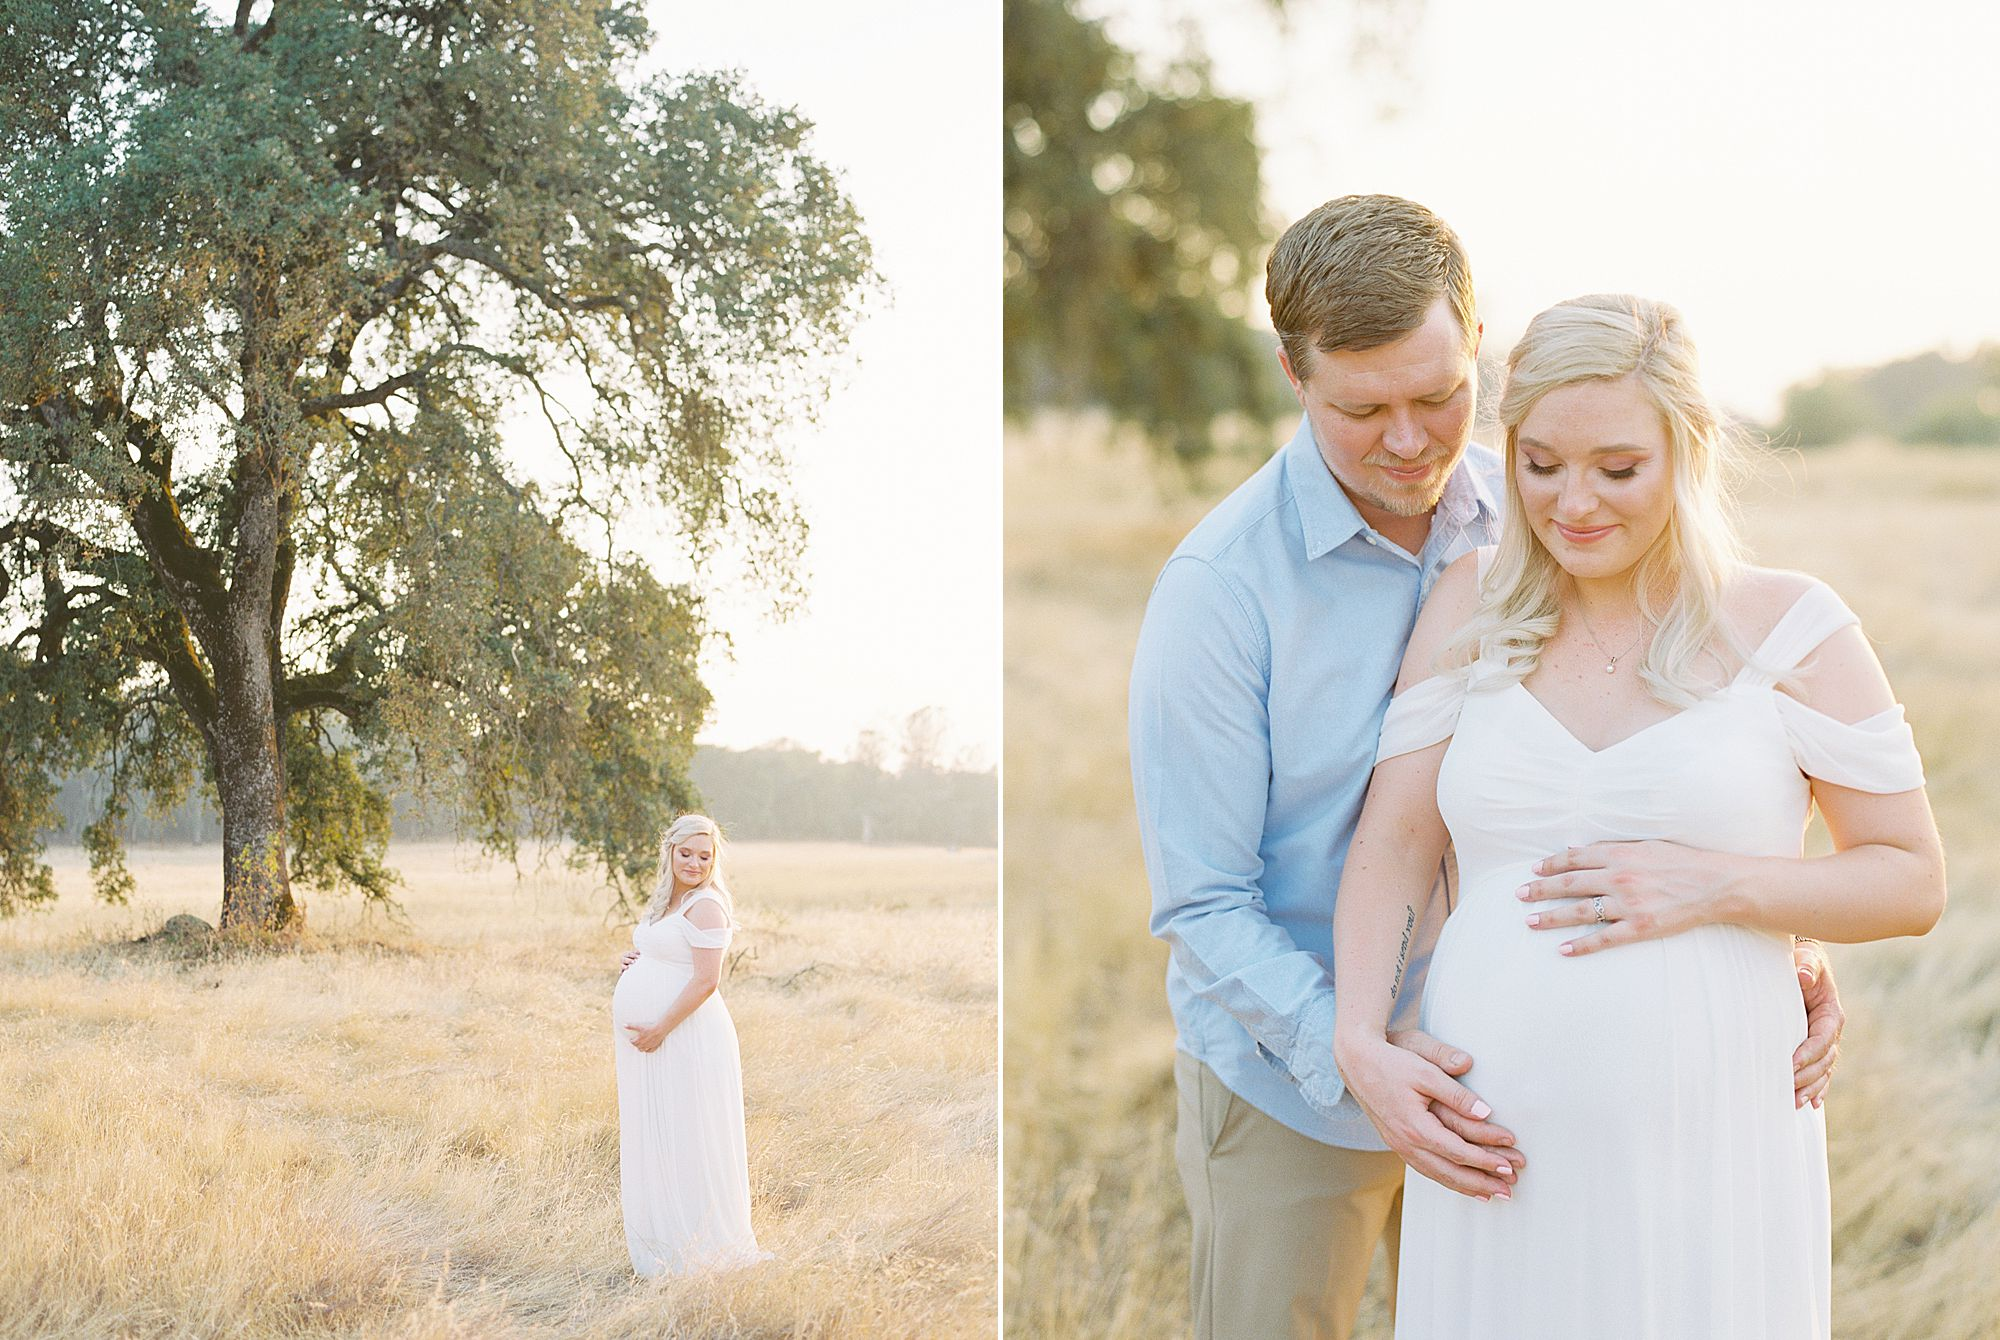 Golden Sacramento Maternity - Hannah and Connor - Ashley Baumgartner - Sacramento Maternity Photographer_0004.jpg